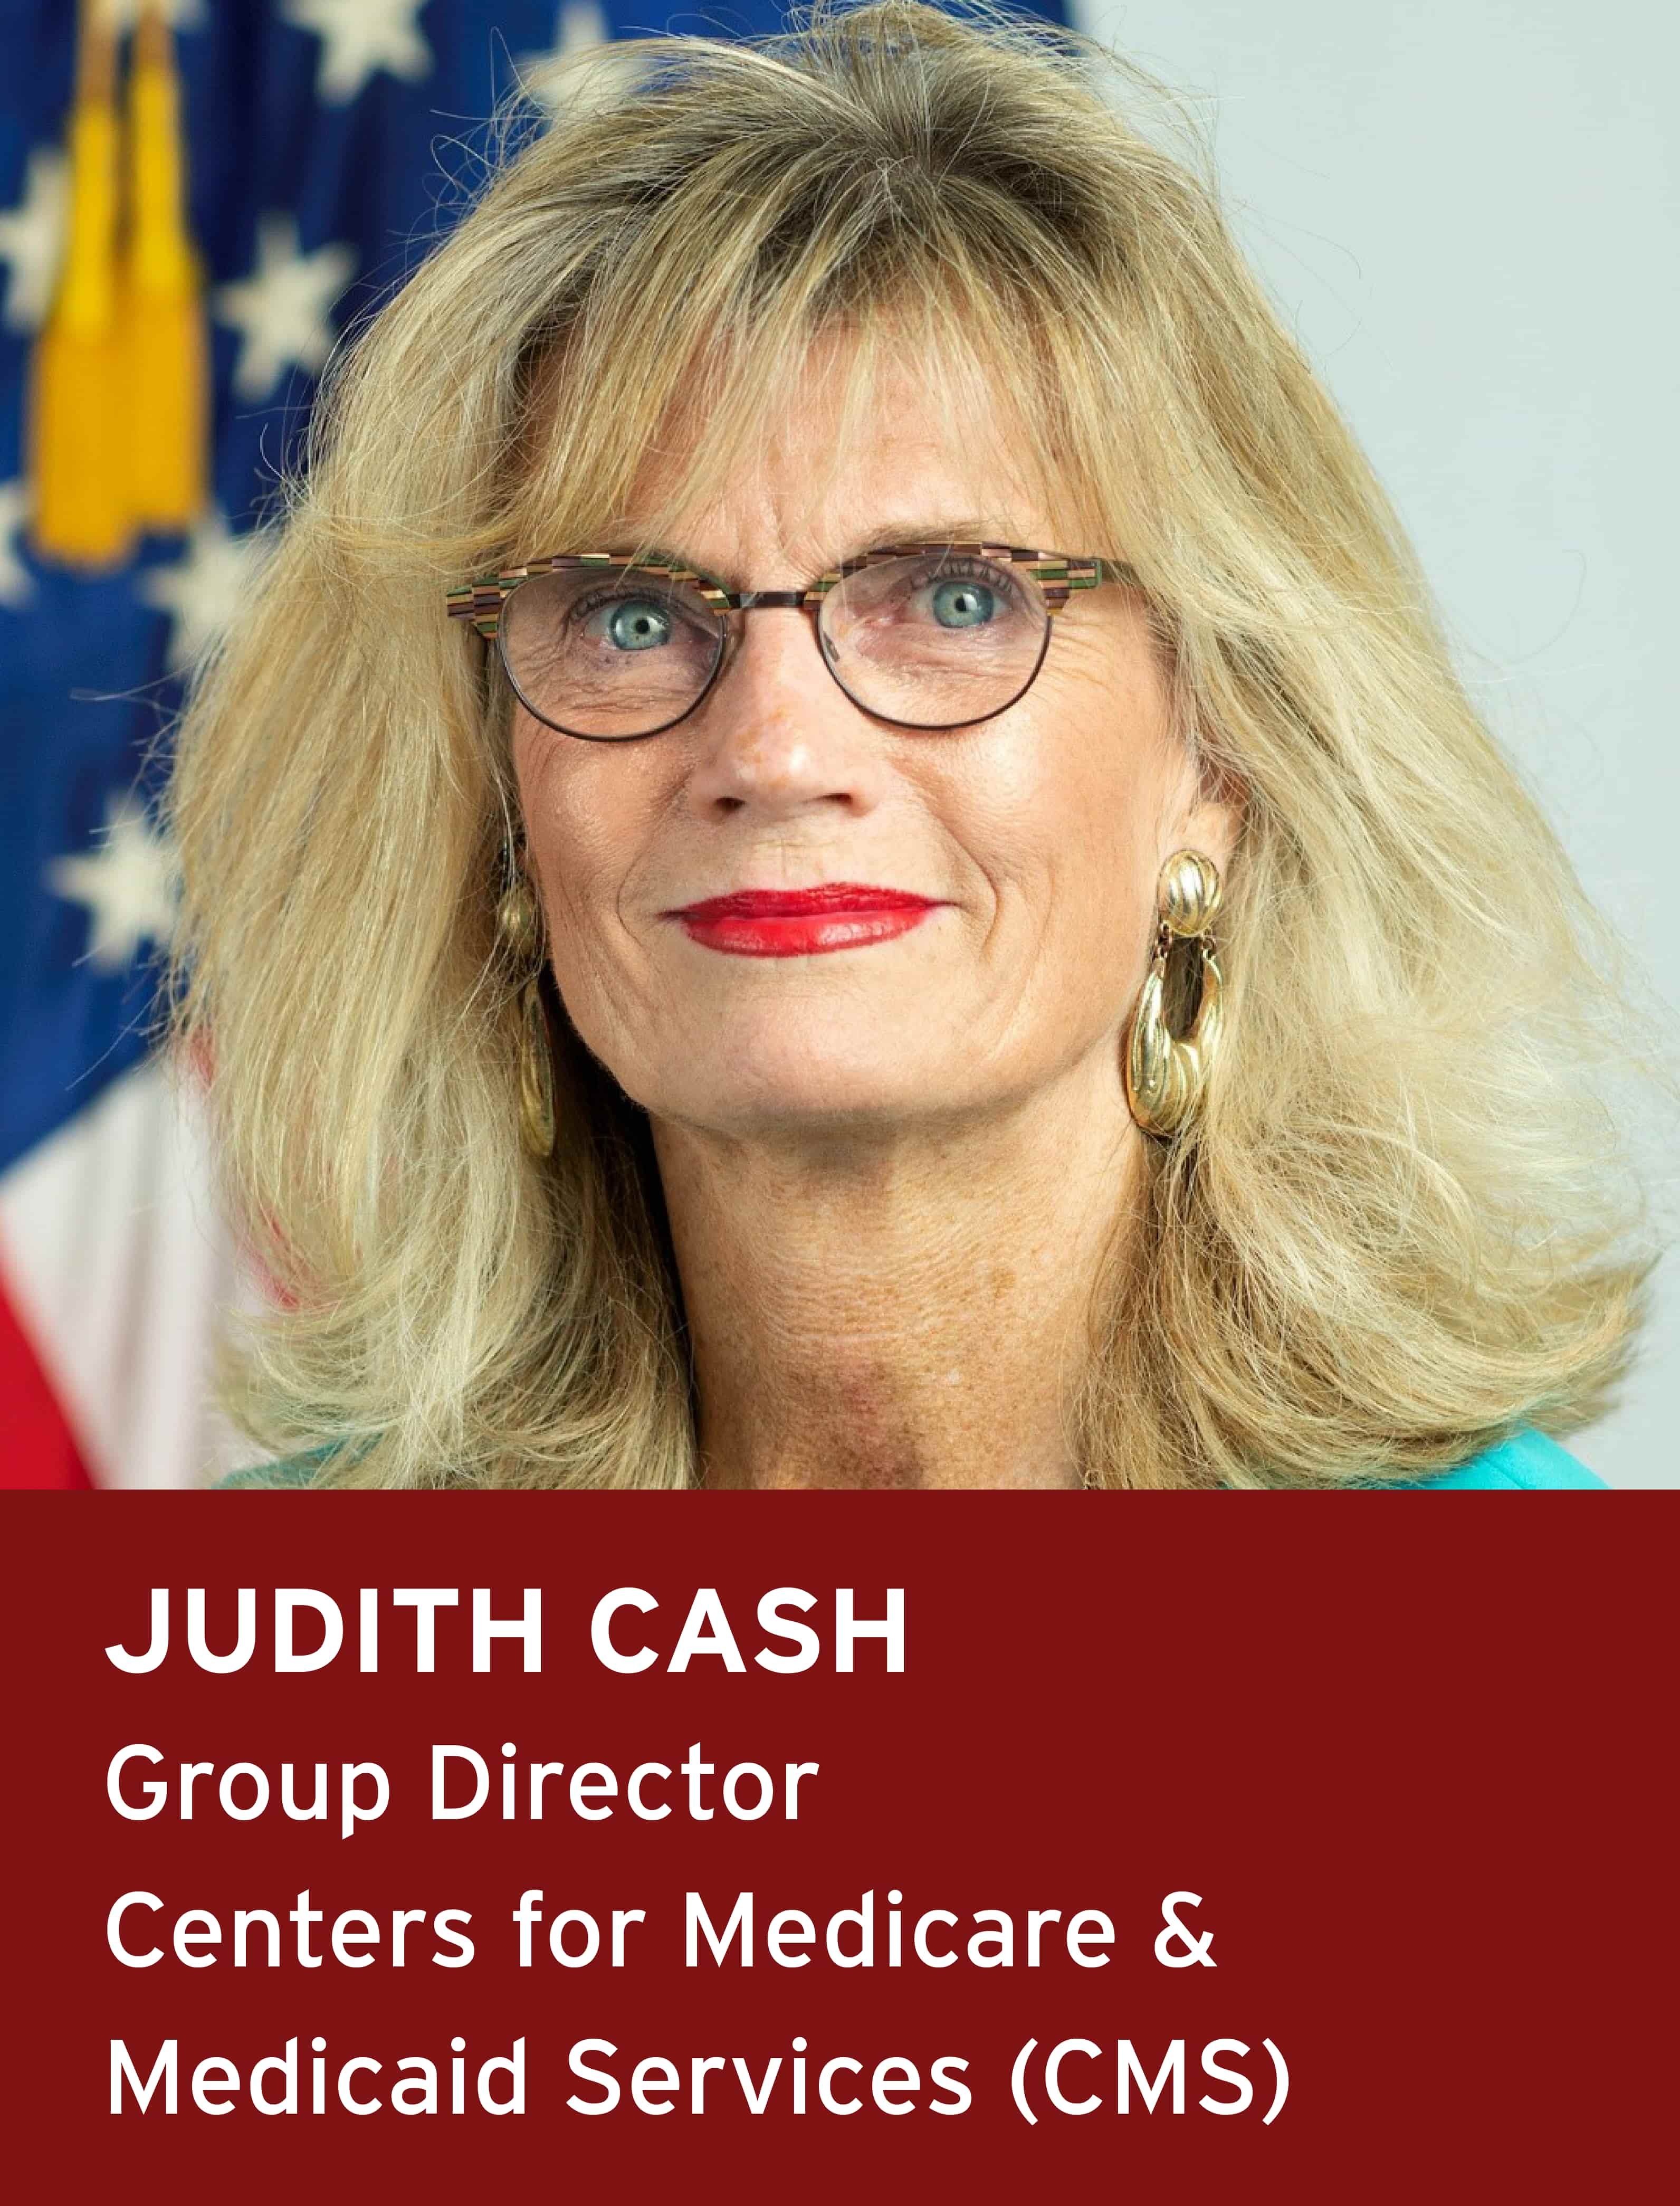 Judith Cash, Group Director, Centers for Medicare and Medicaid Services